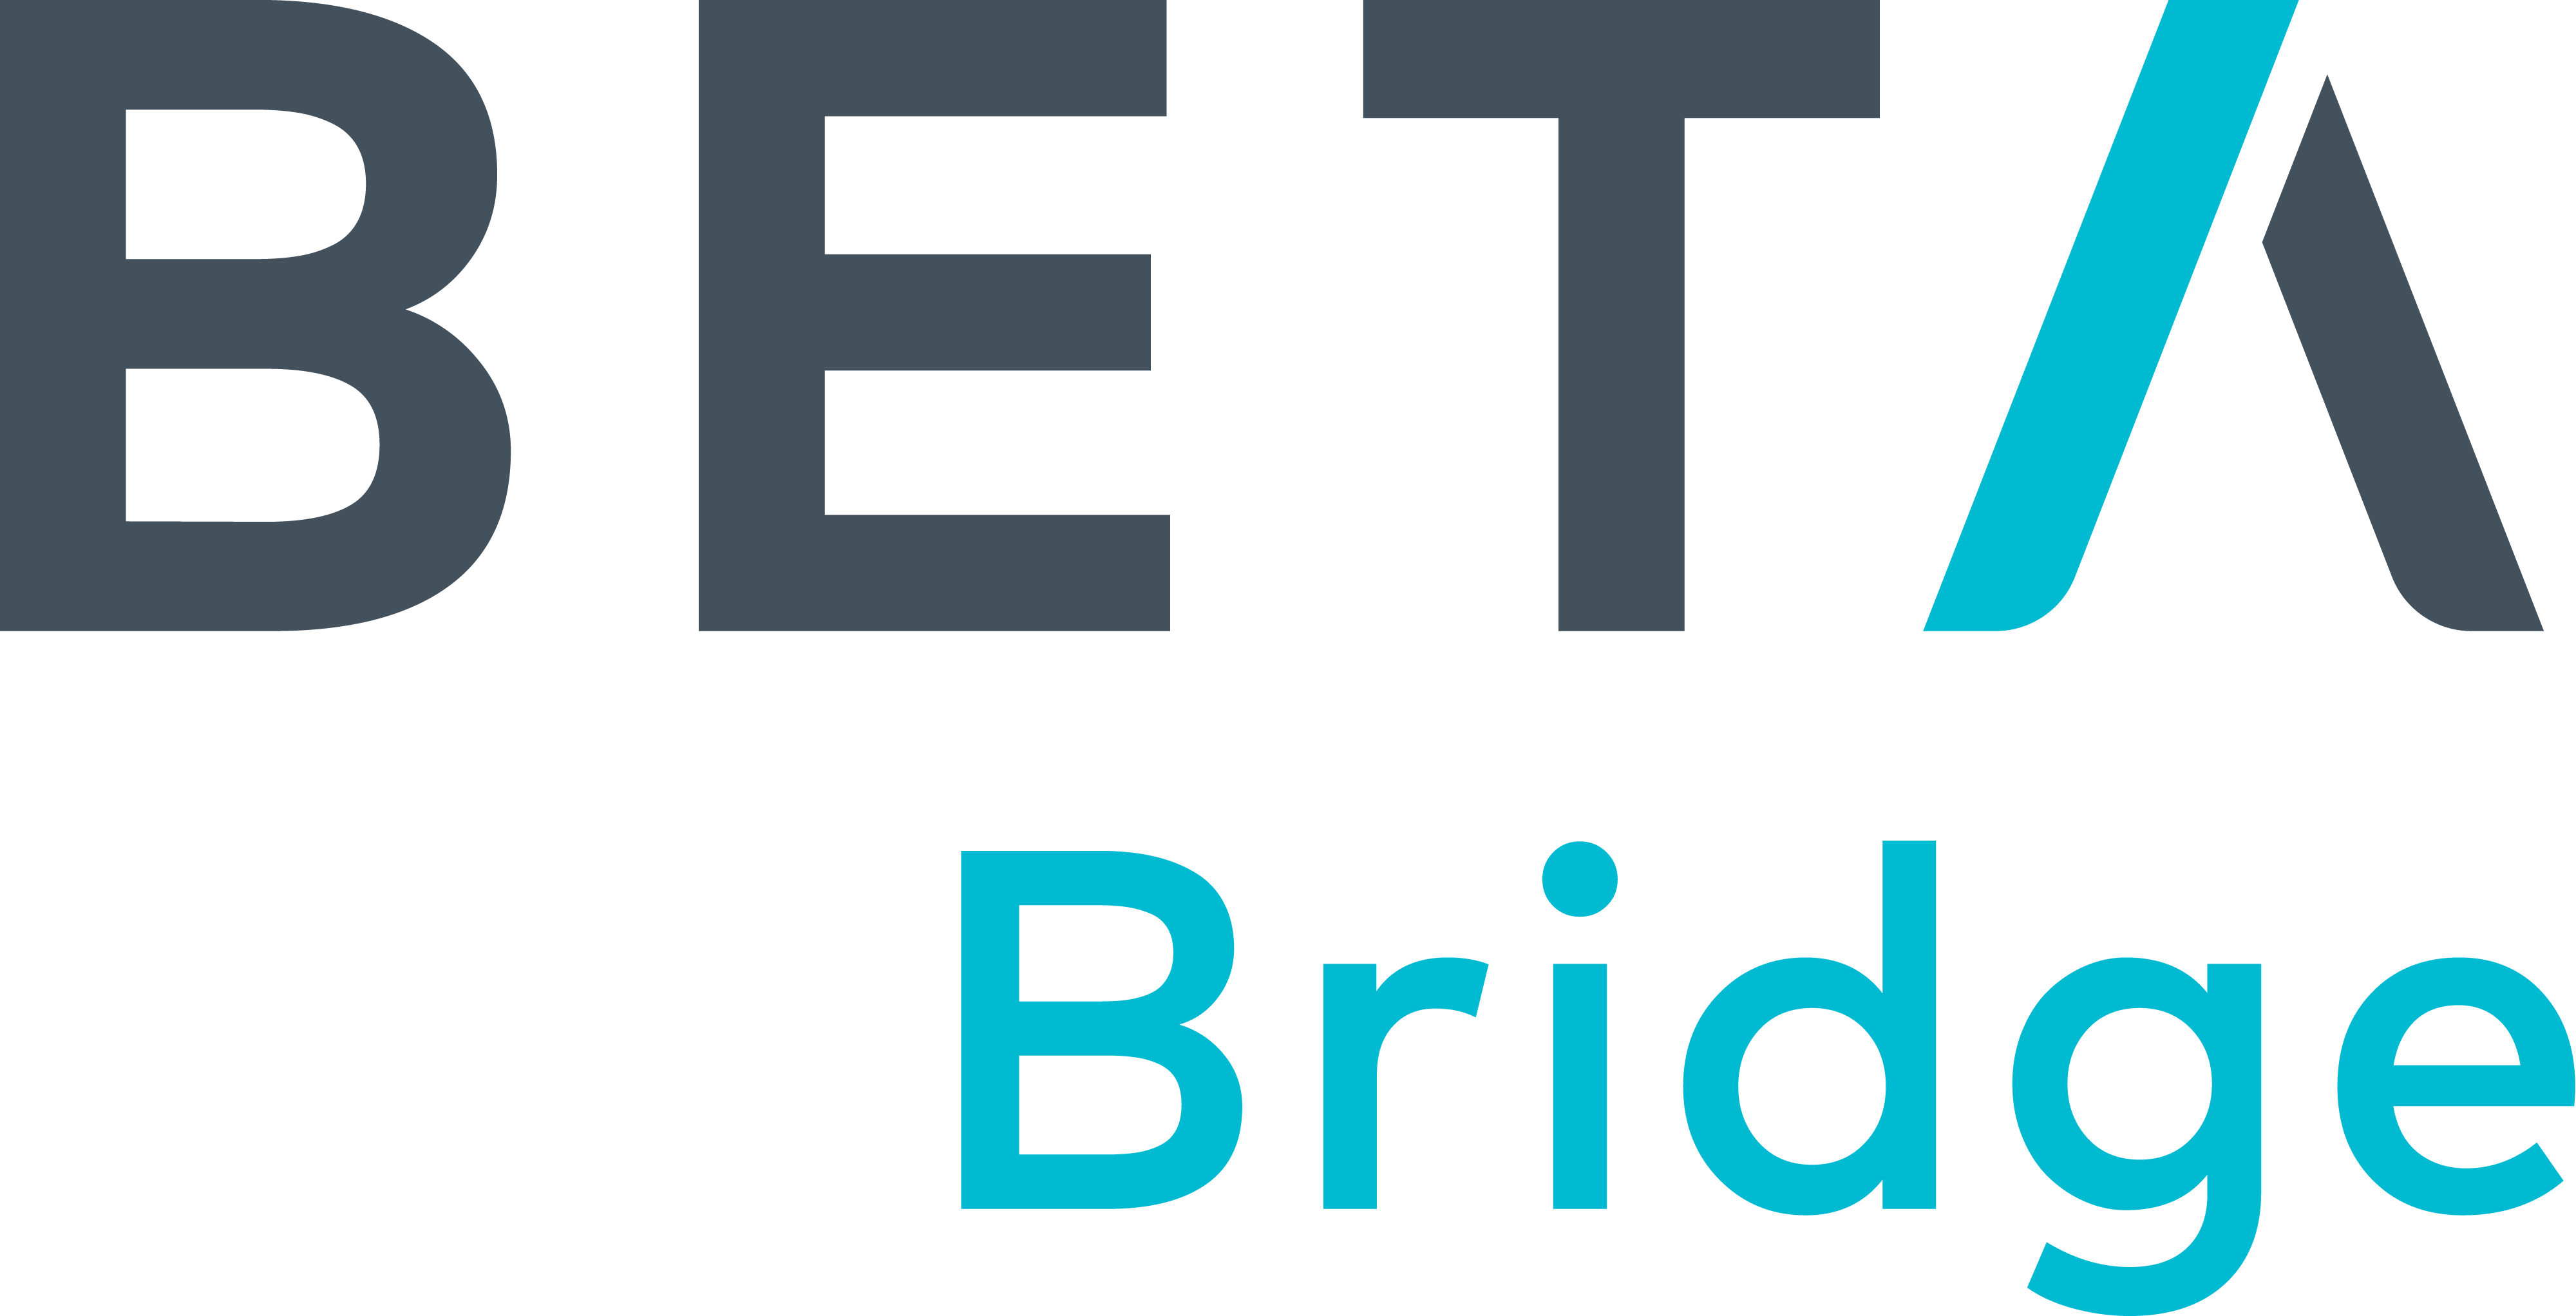 BETA.MN Bridge Logo